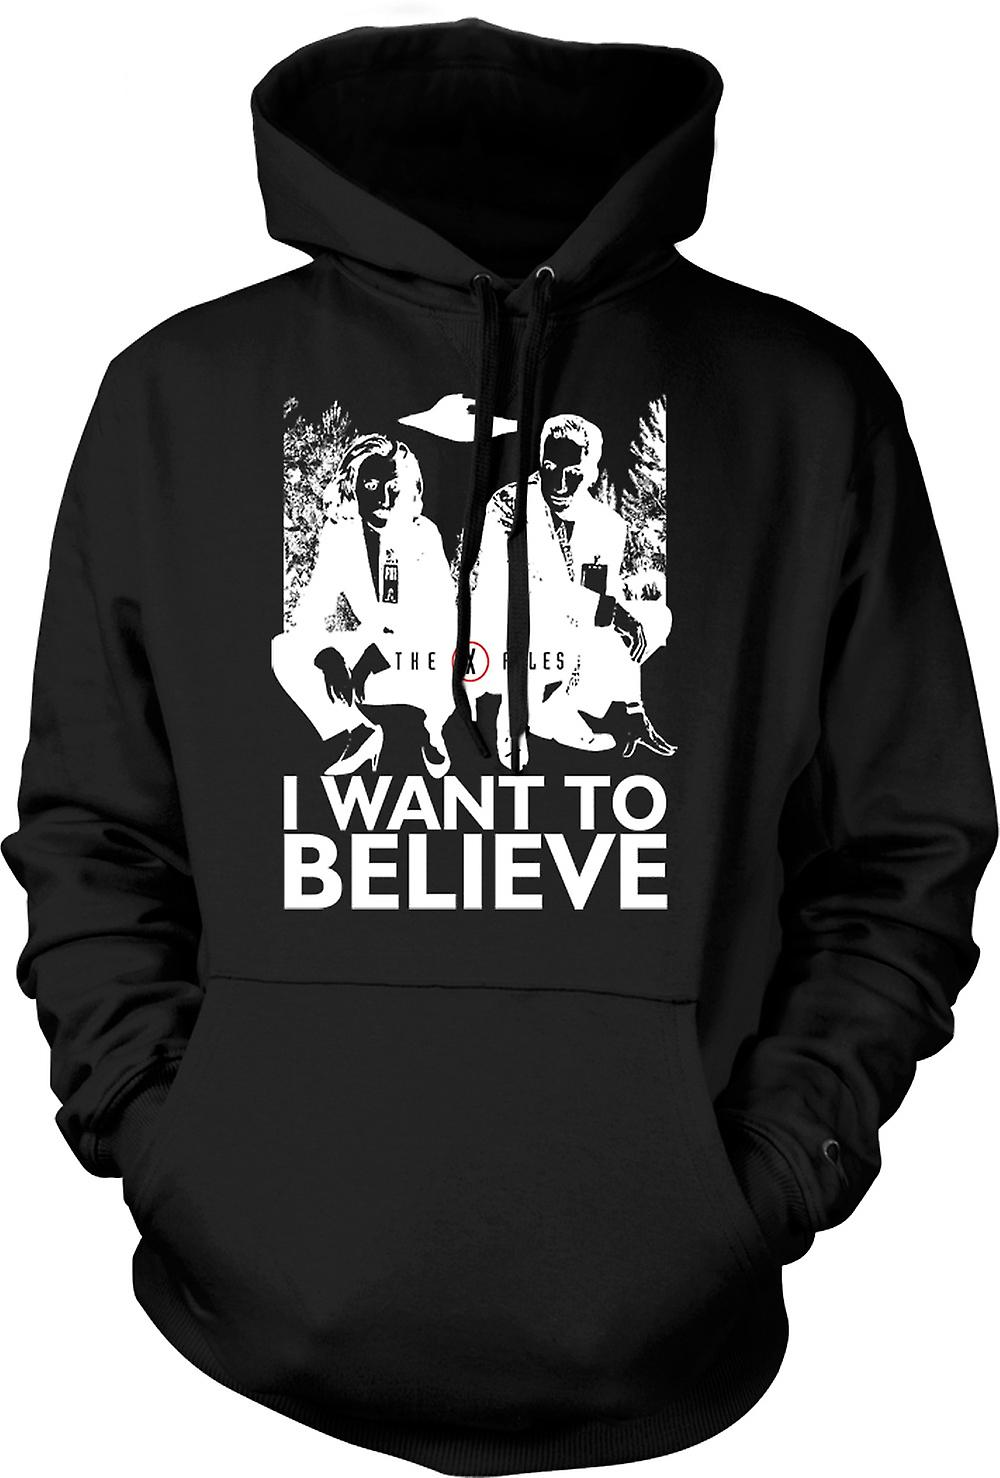 Kids Hoodie - X Files I Want To believe - UFO